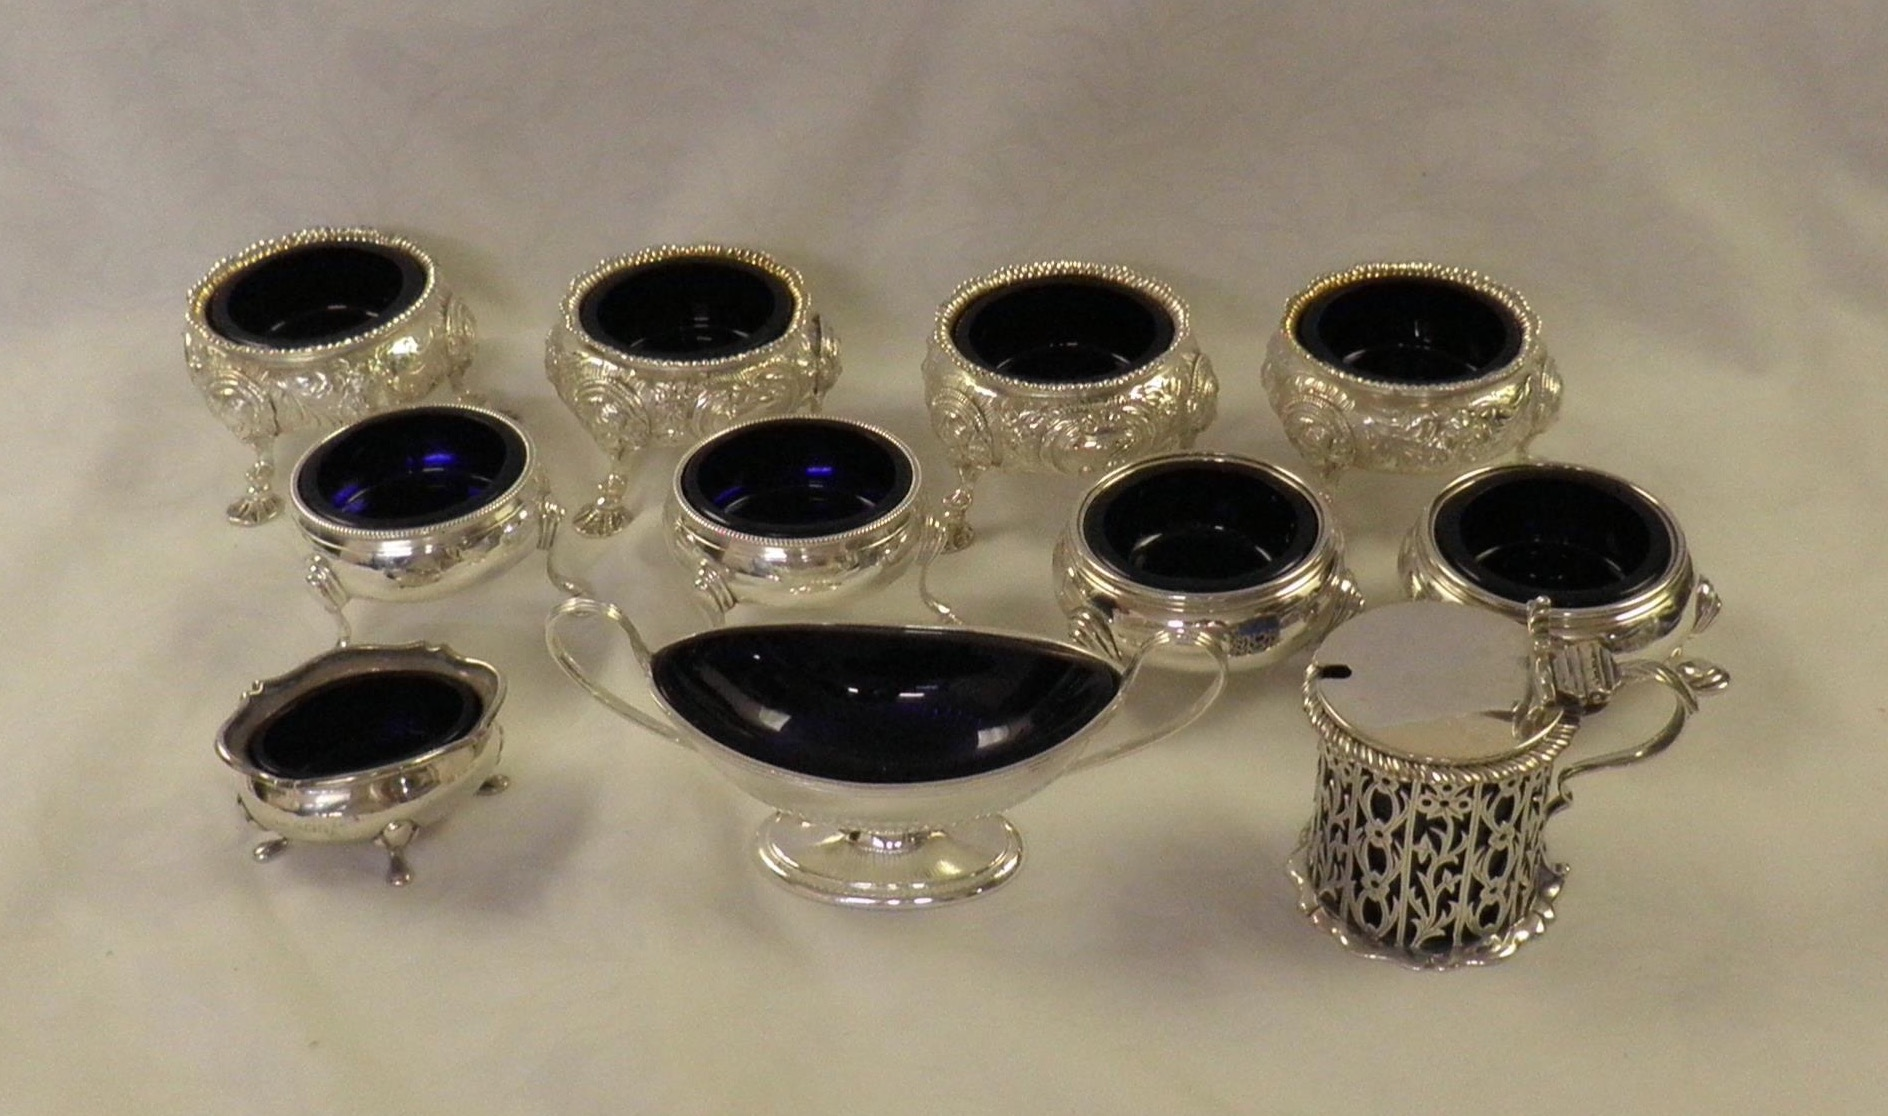 Blue glass liners for silver salt & mustard pots